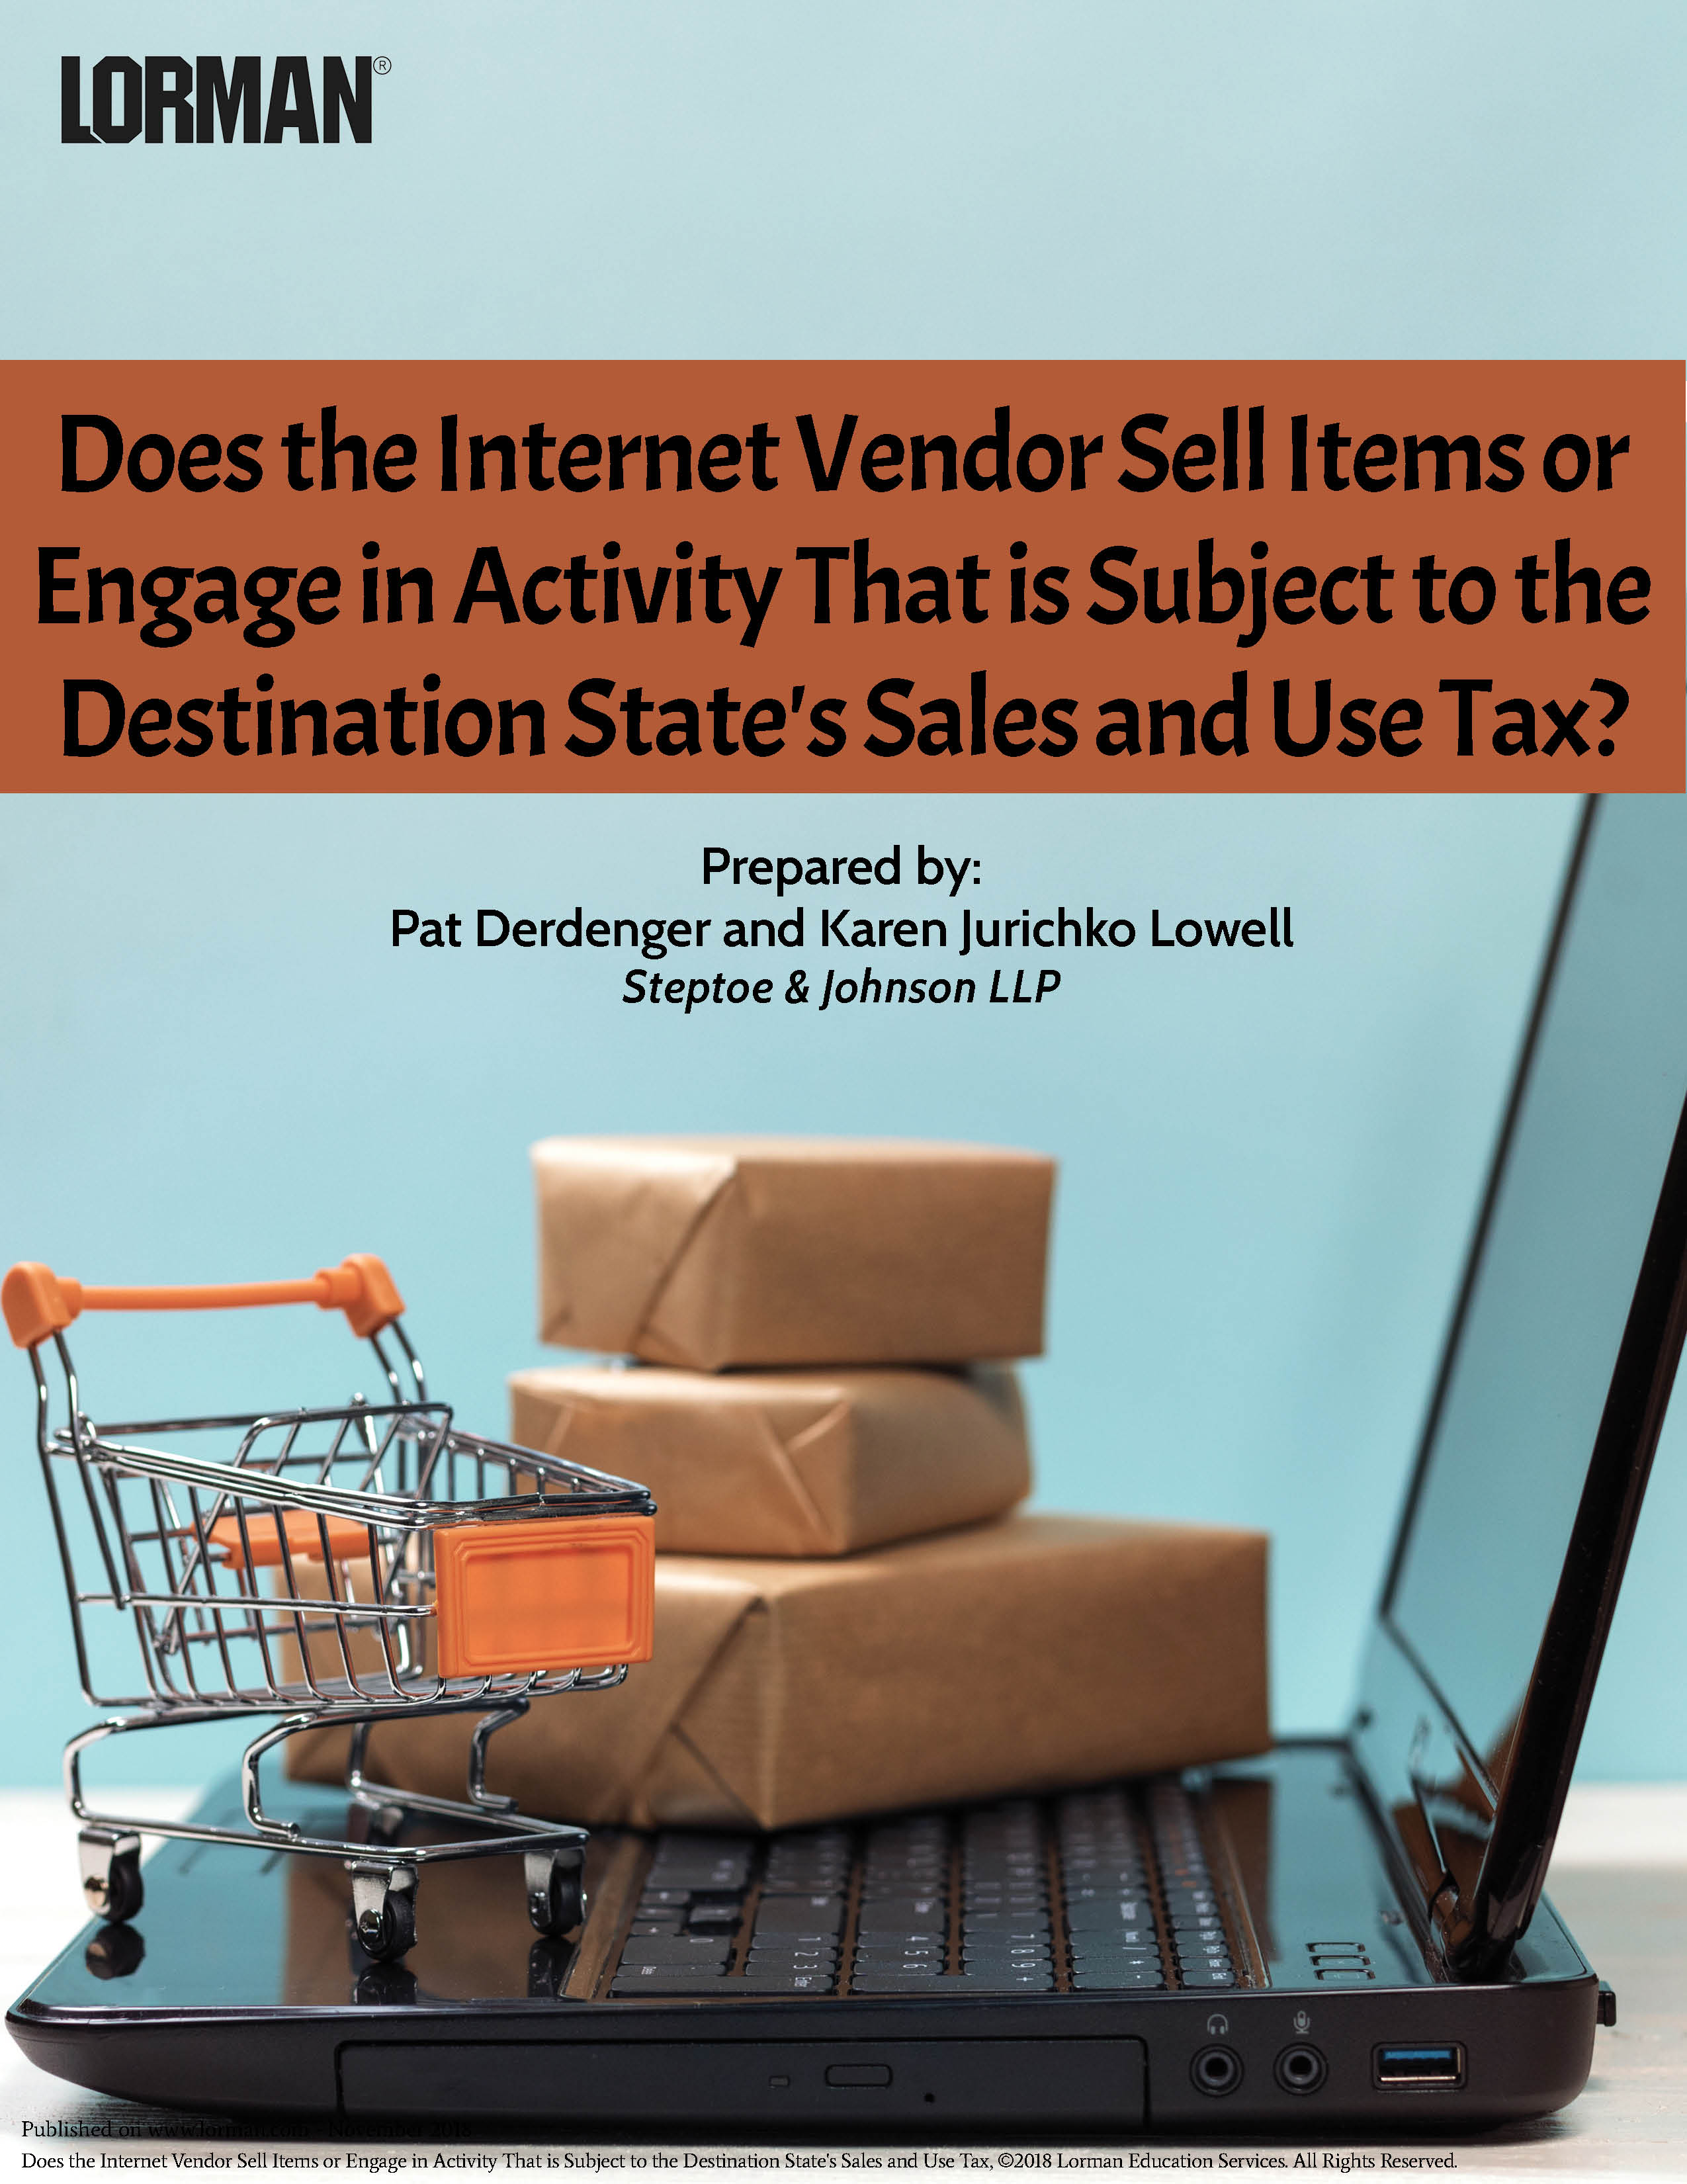 Does the Internet Vendor Sell Items Subject to Destination State's Sales and Use Tax?